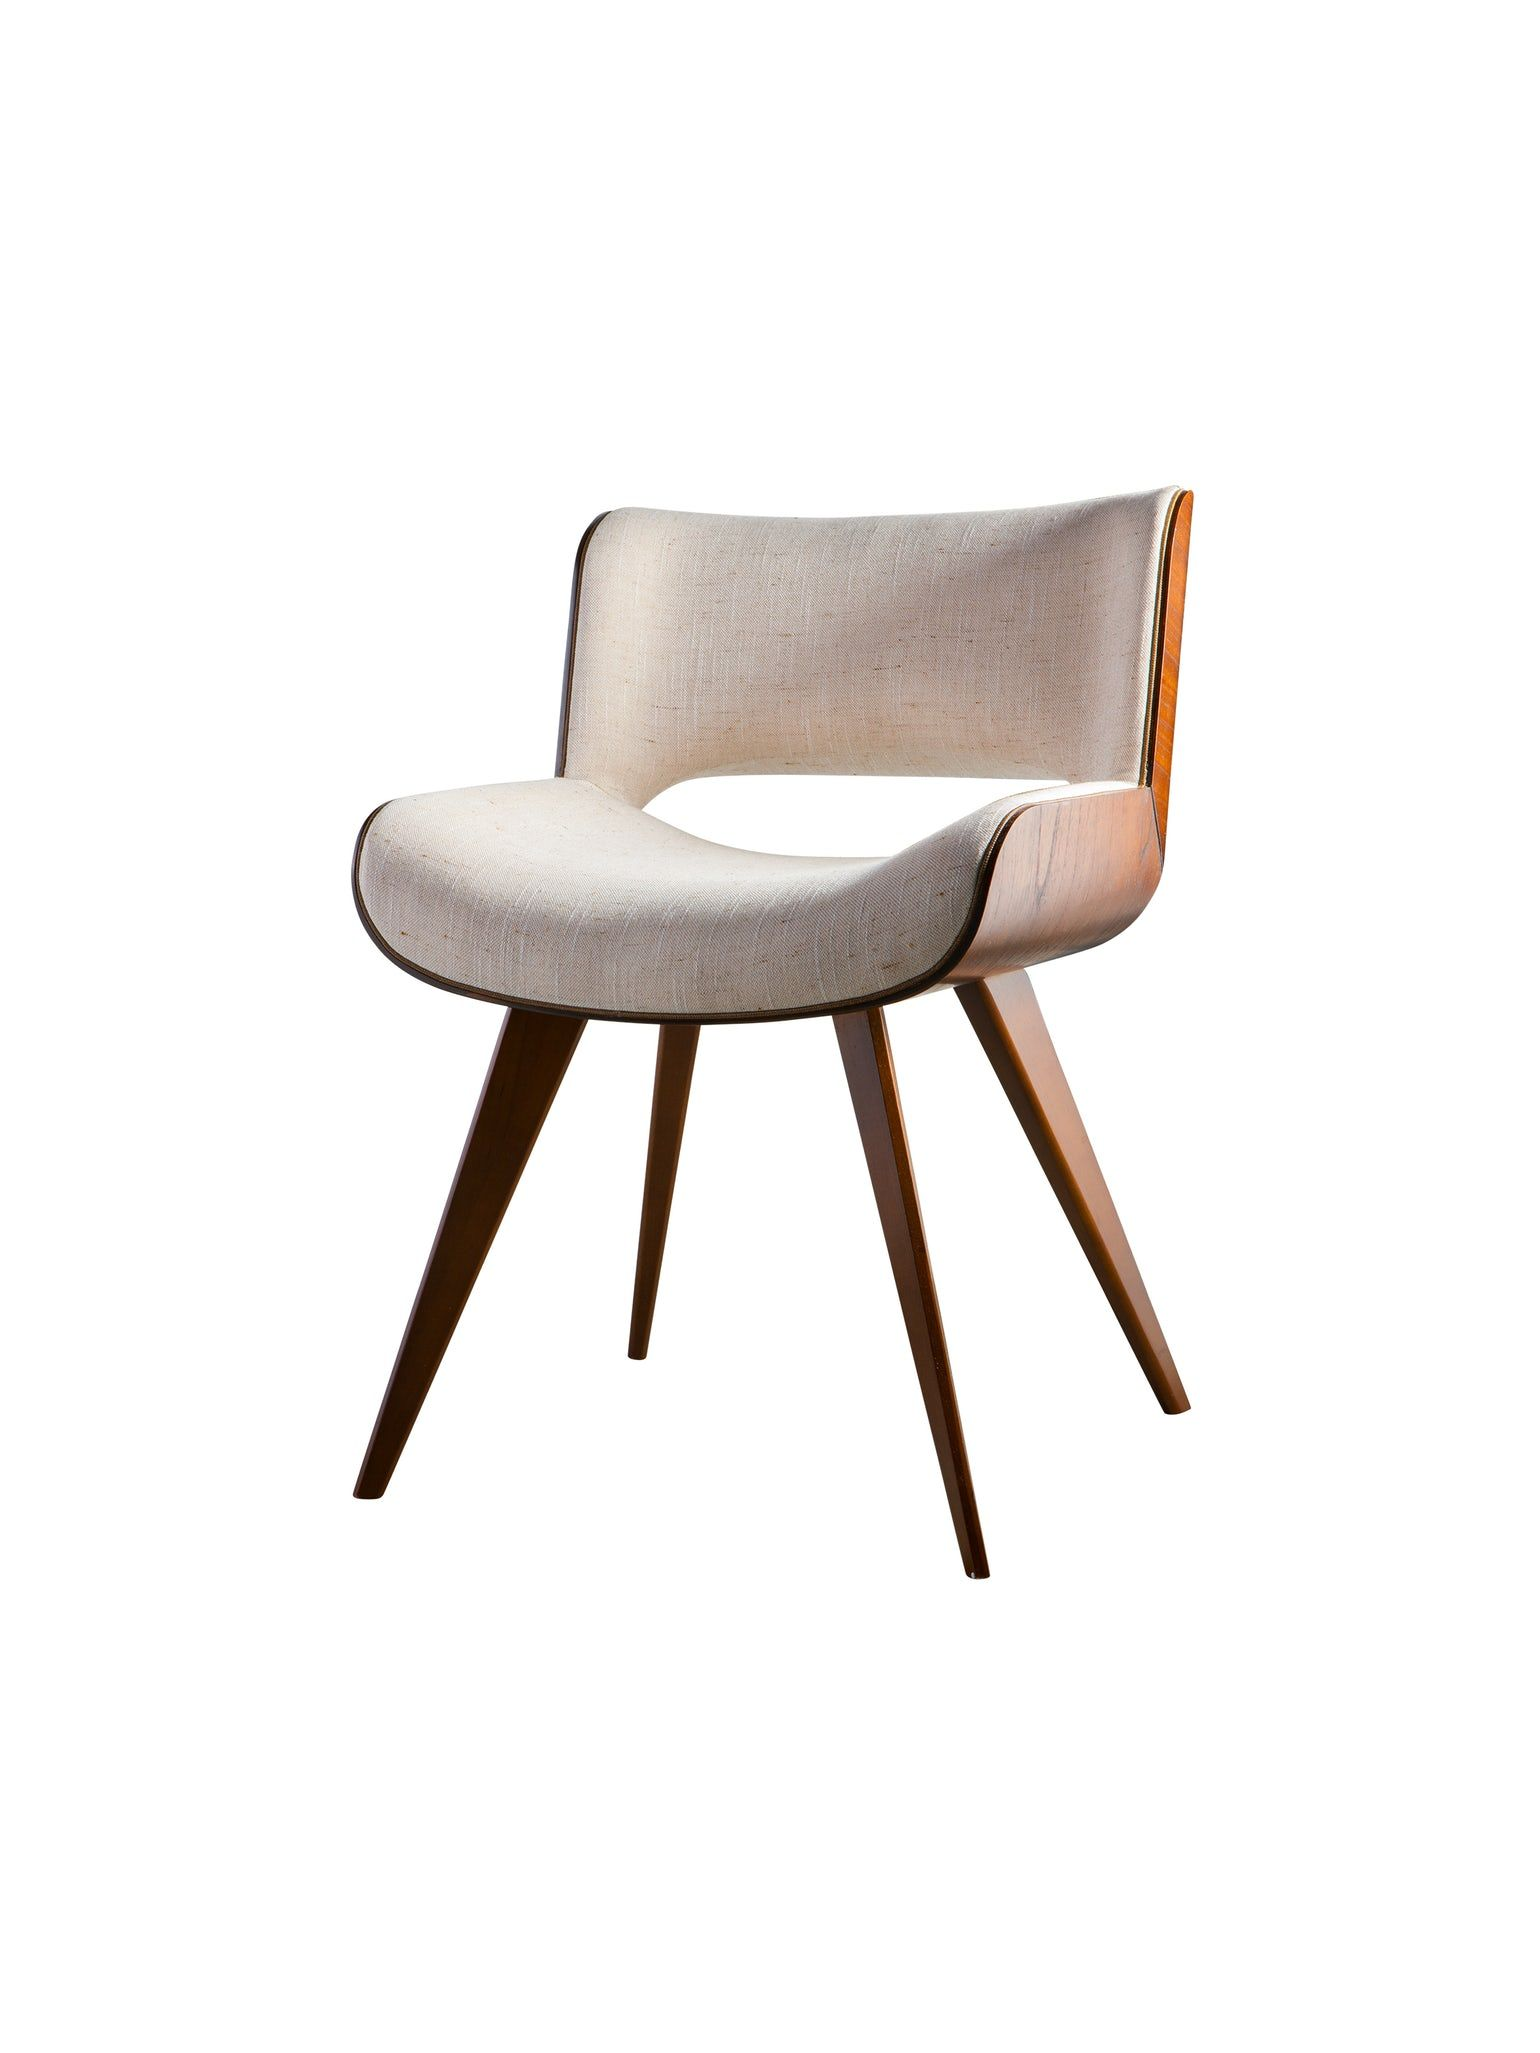 Selena Dining Chair Contemporary Transitional Mid Century